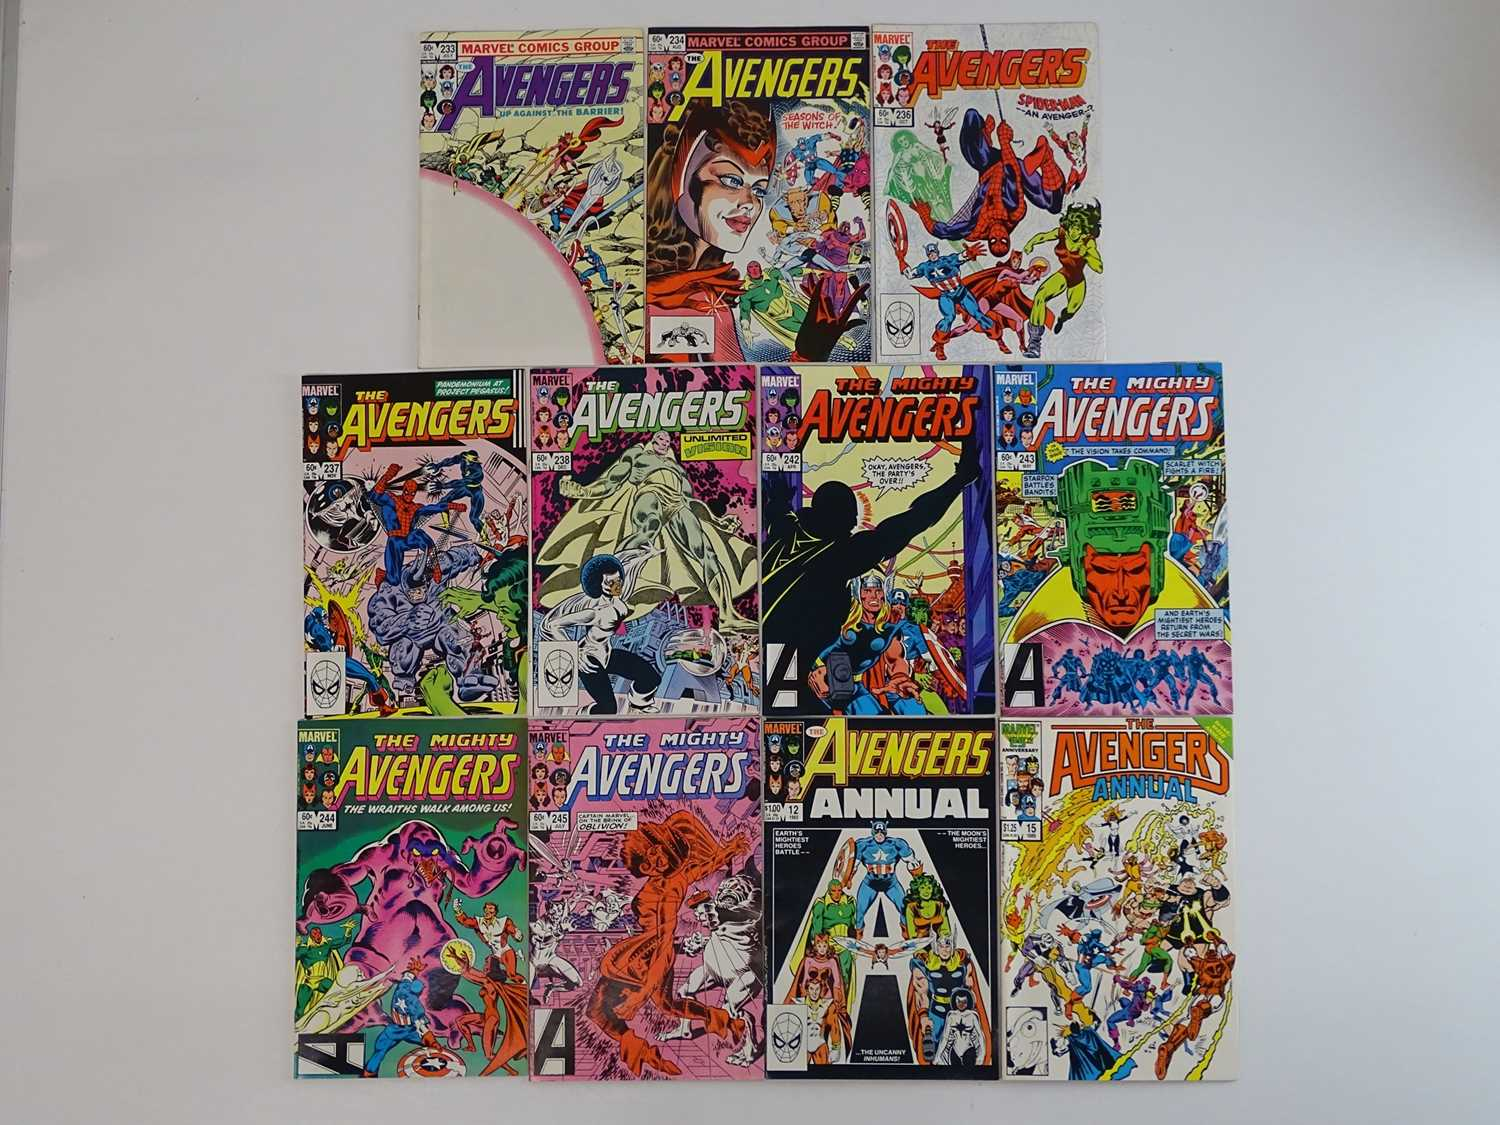 AVENGERS #233, 234, 236, 237, 238, 242, 243, 244, 245 + Annuals #12 & 15 - (11 in Lot) - (1983/